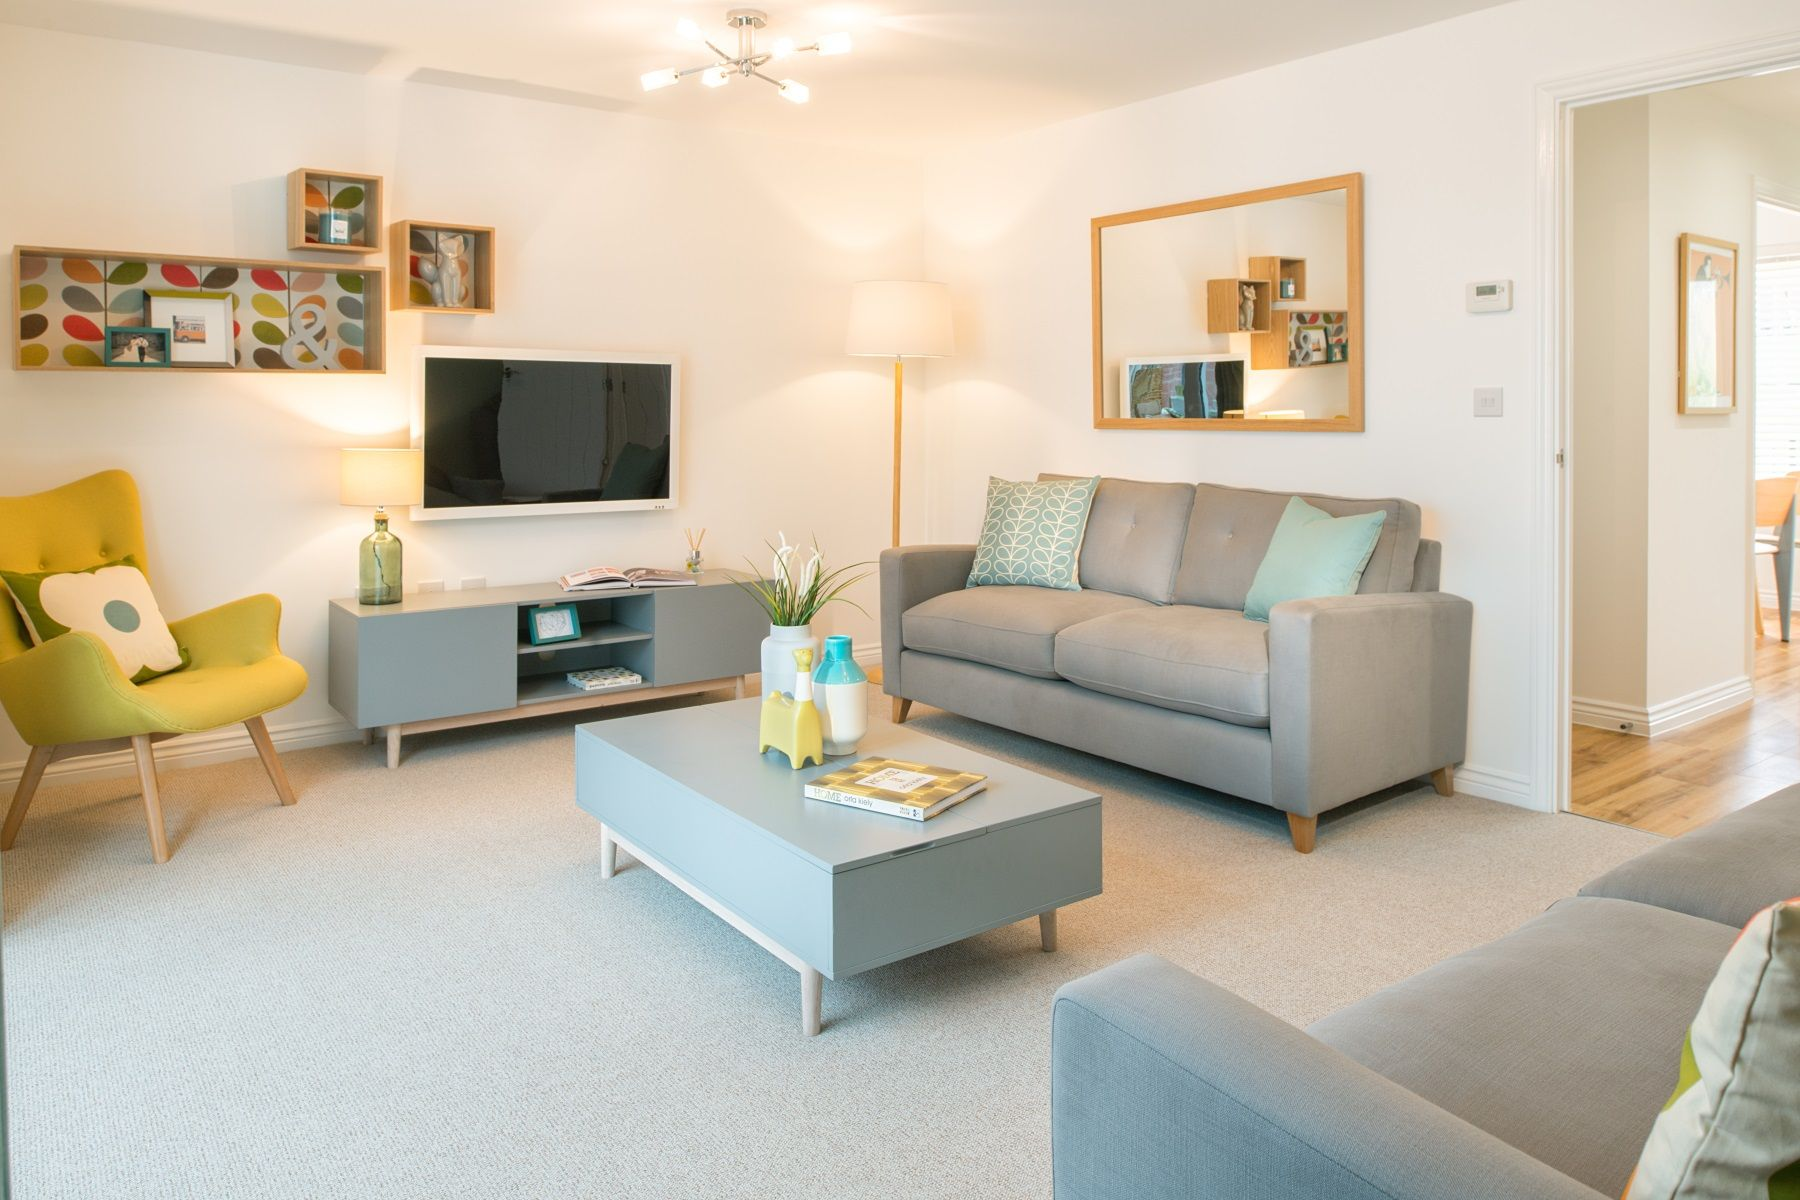 TW Exeter - Copleston Heights - Flatford example living room